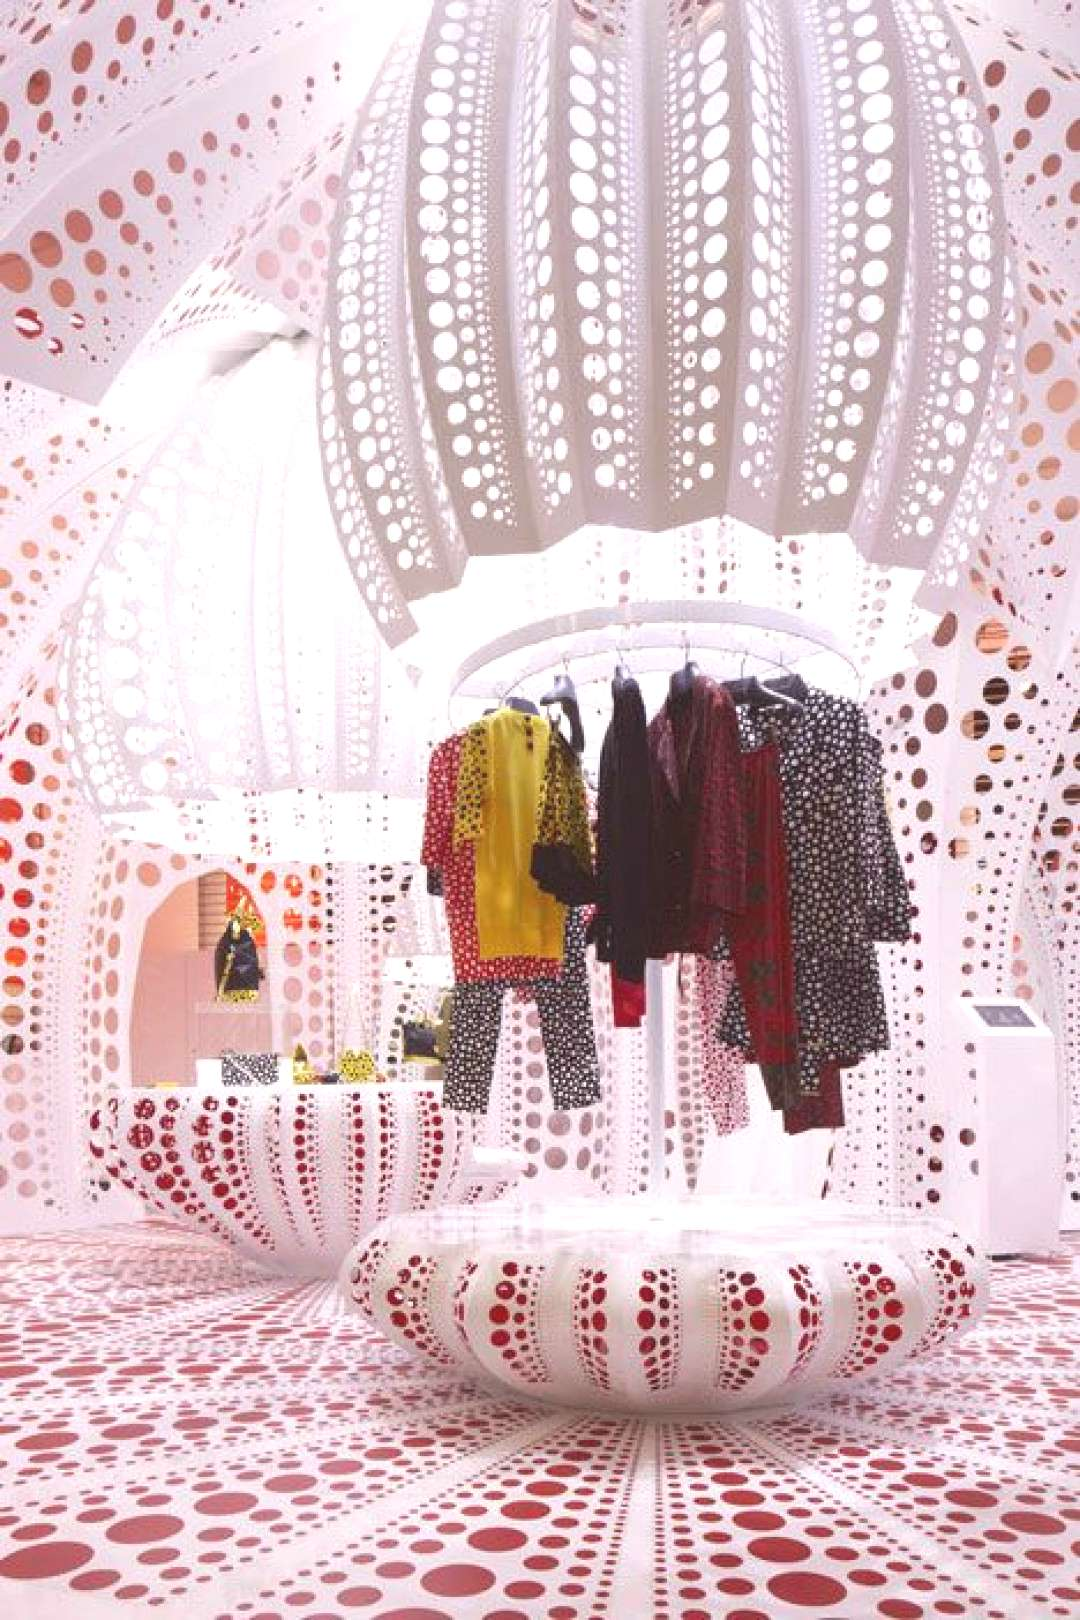 Louis Vuitton and Kusama concept store at Selfridges - I'm not big on LV stuff, but I LOVE that the